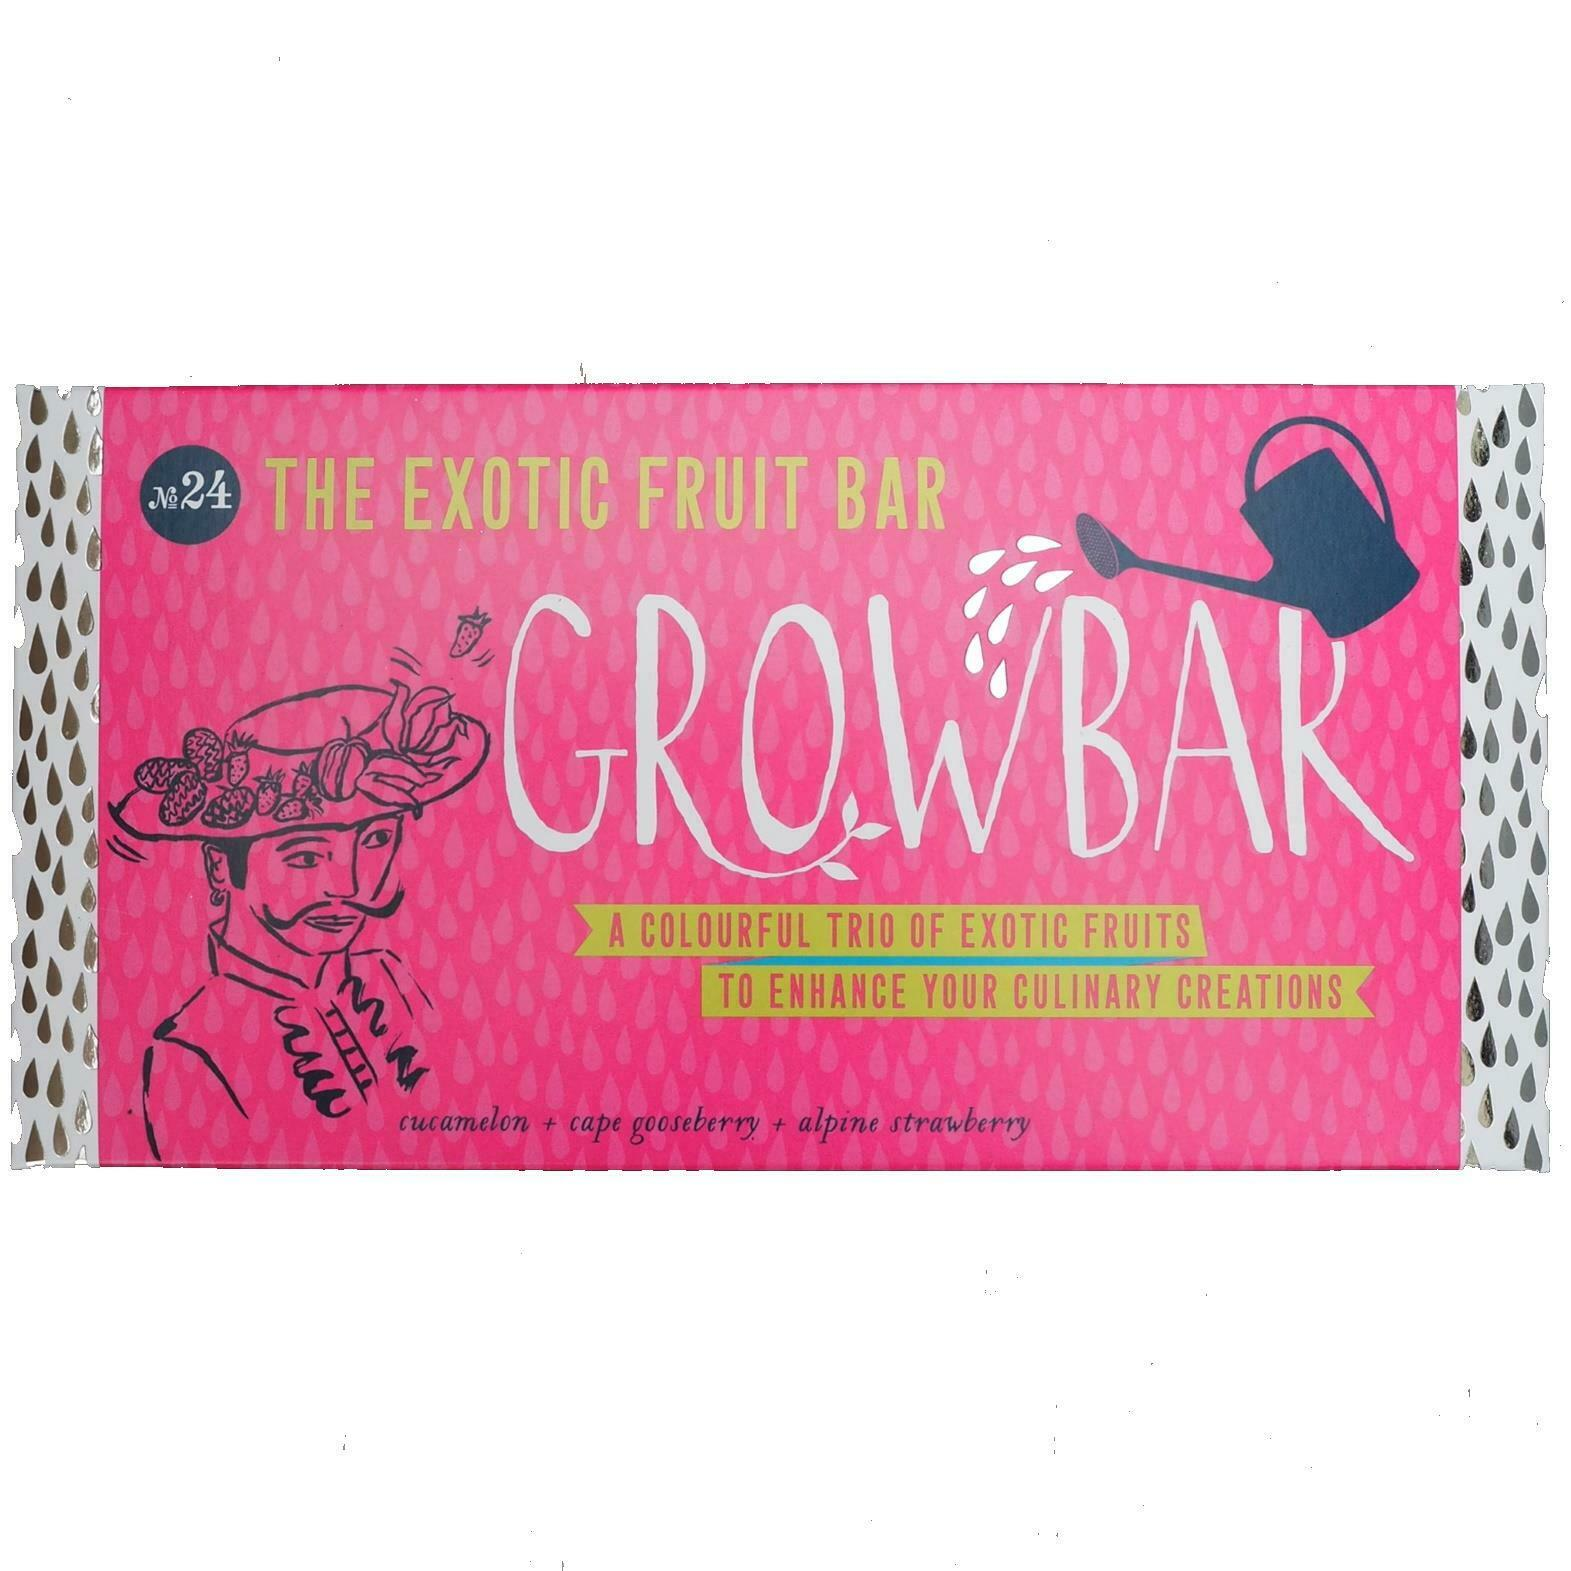 Exotic Fruit Growbar Grow Your Own Seeds Quirky Plant Kit Gardening Gift No.24